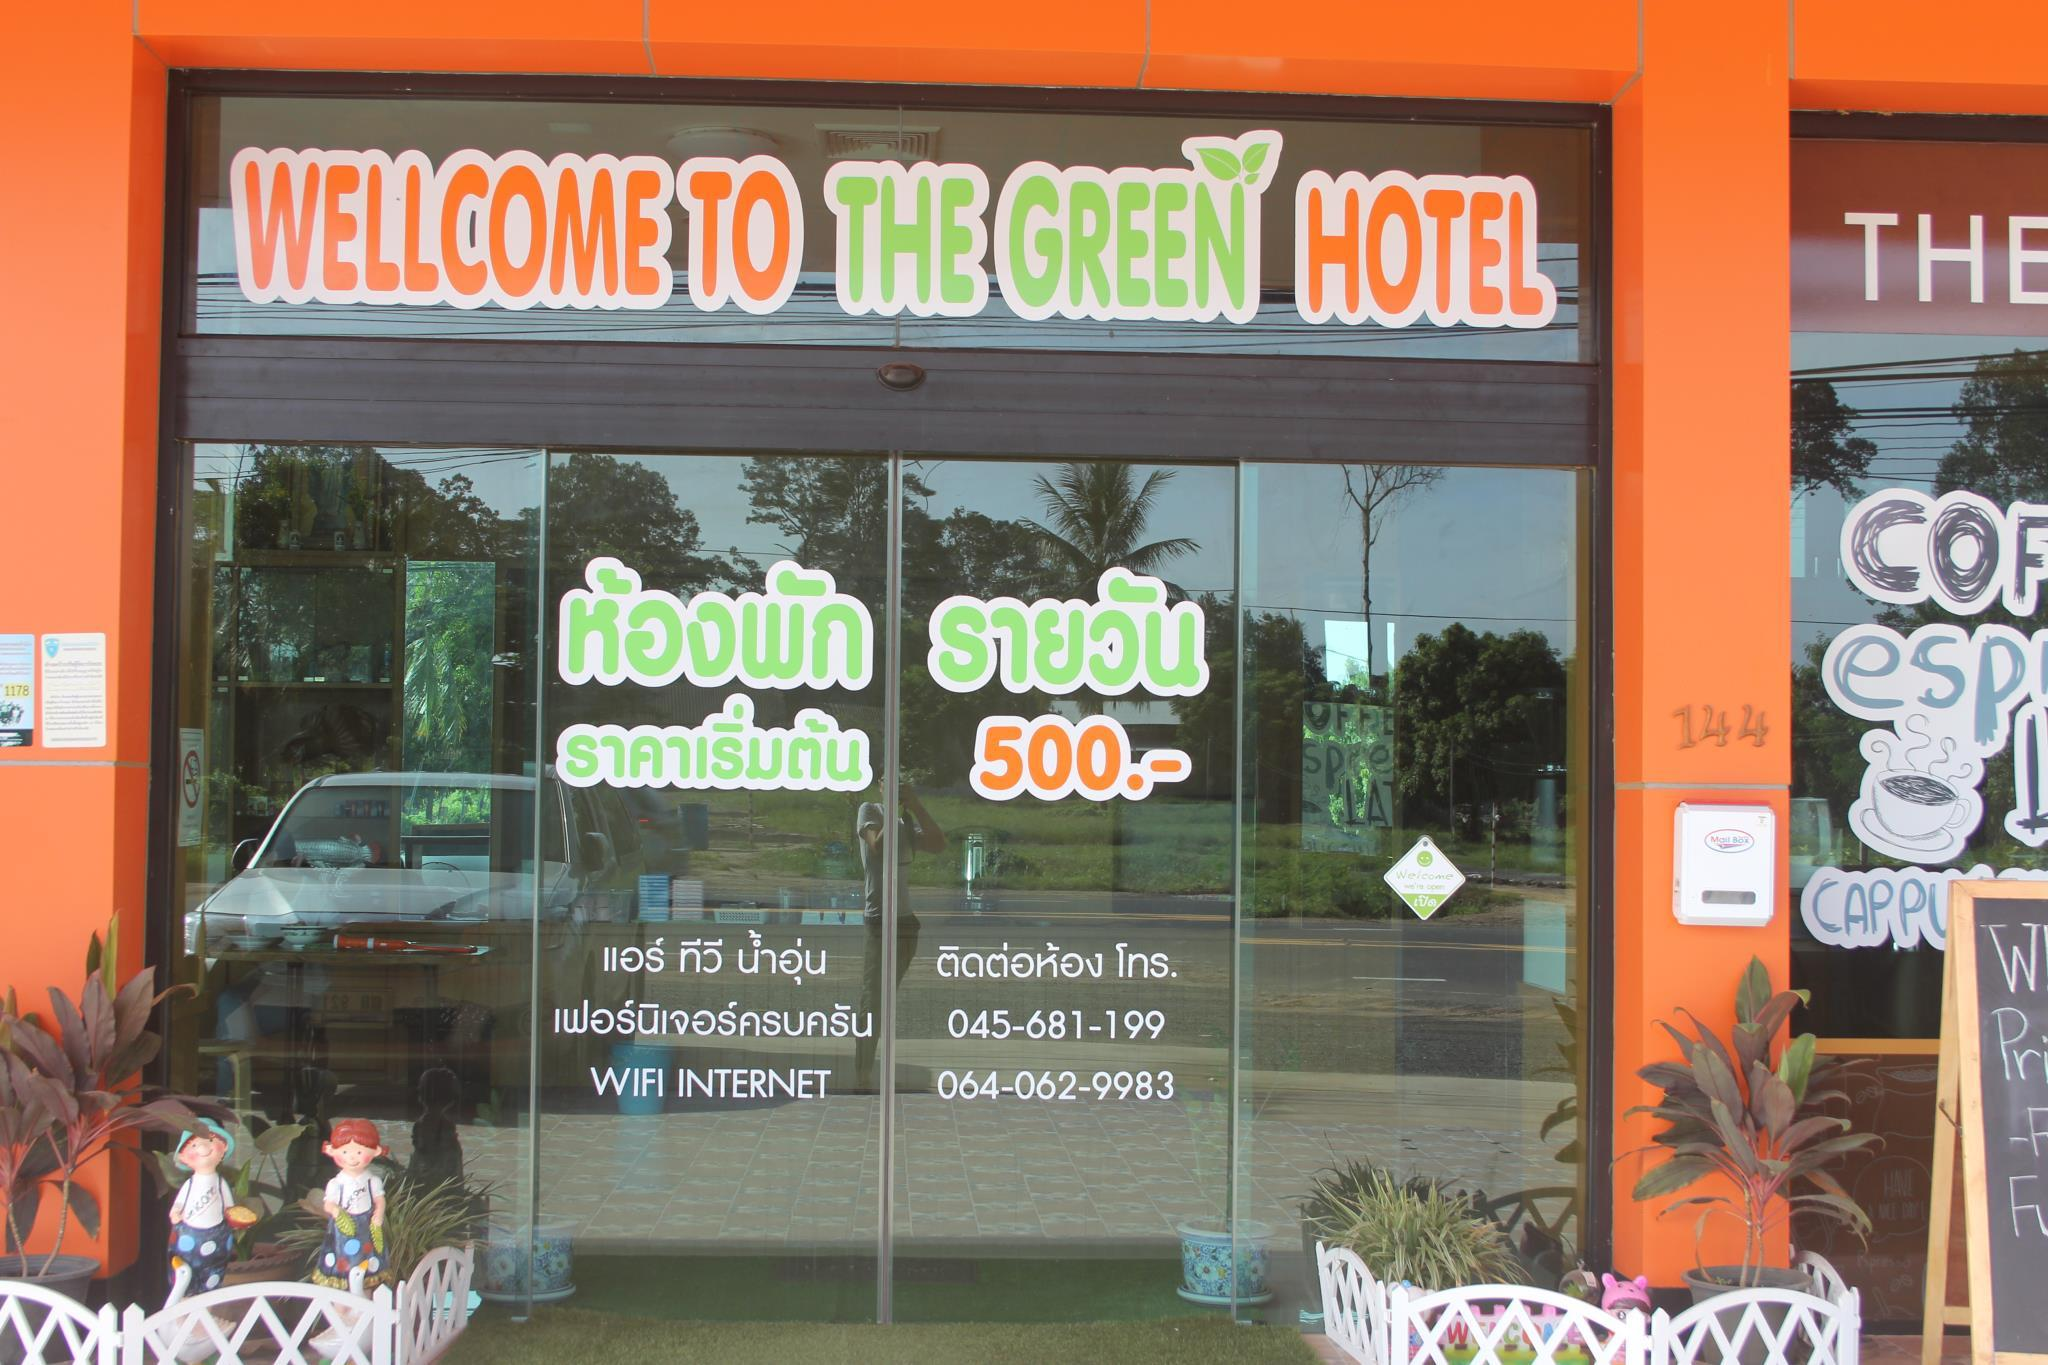 Review The Green Hotel